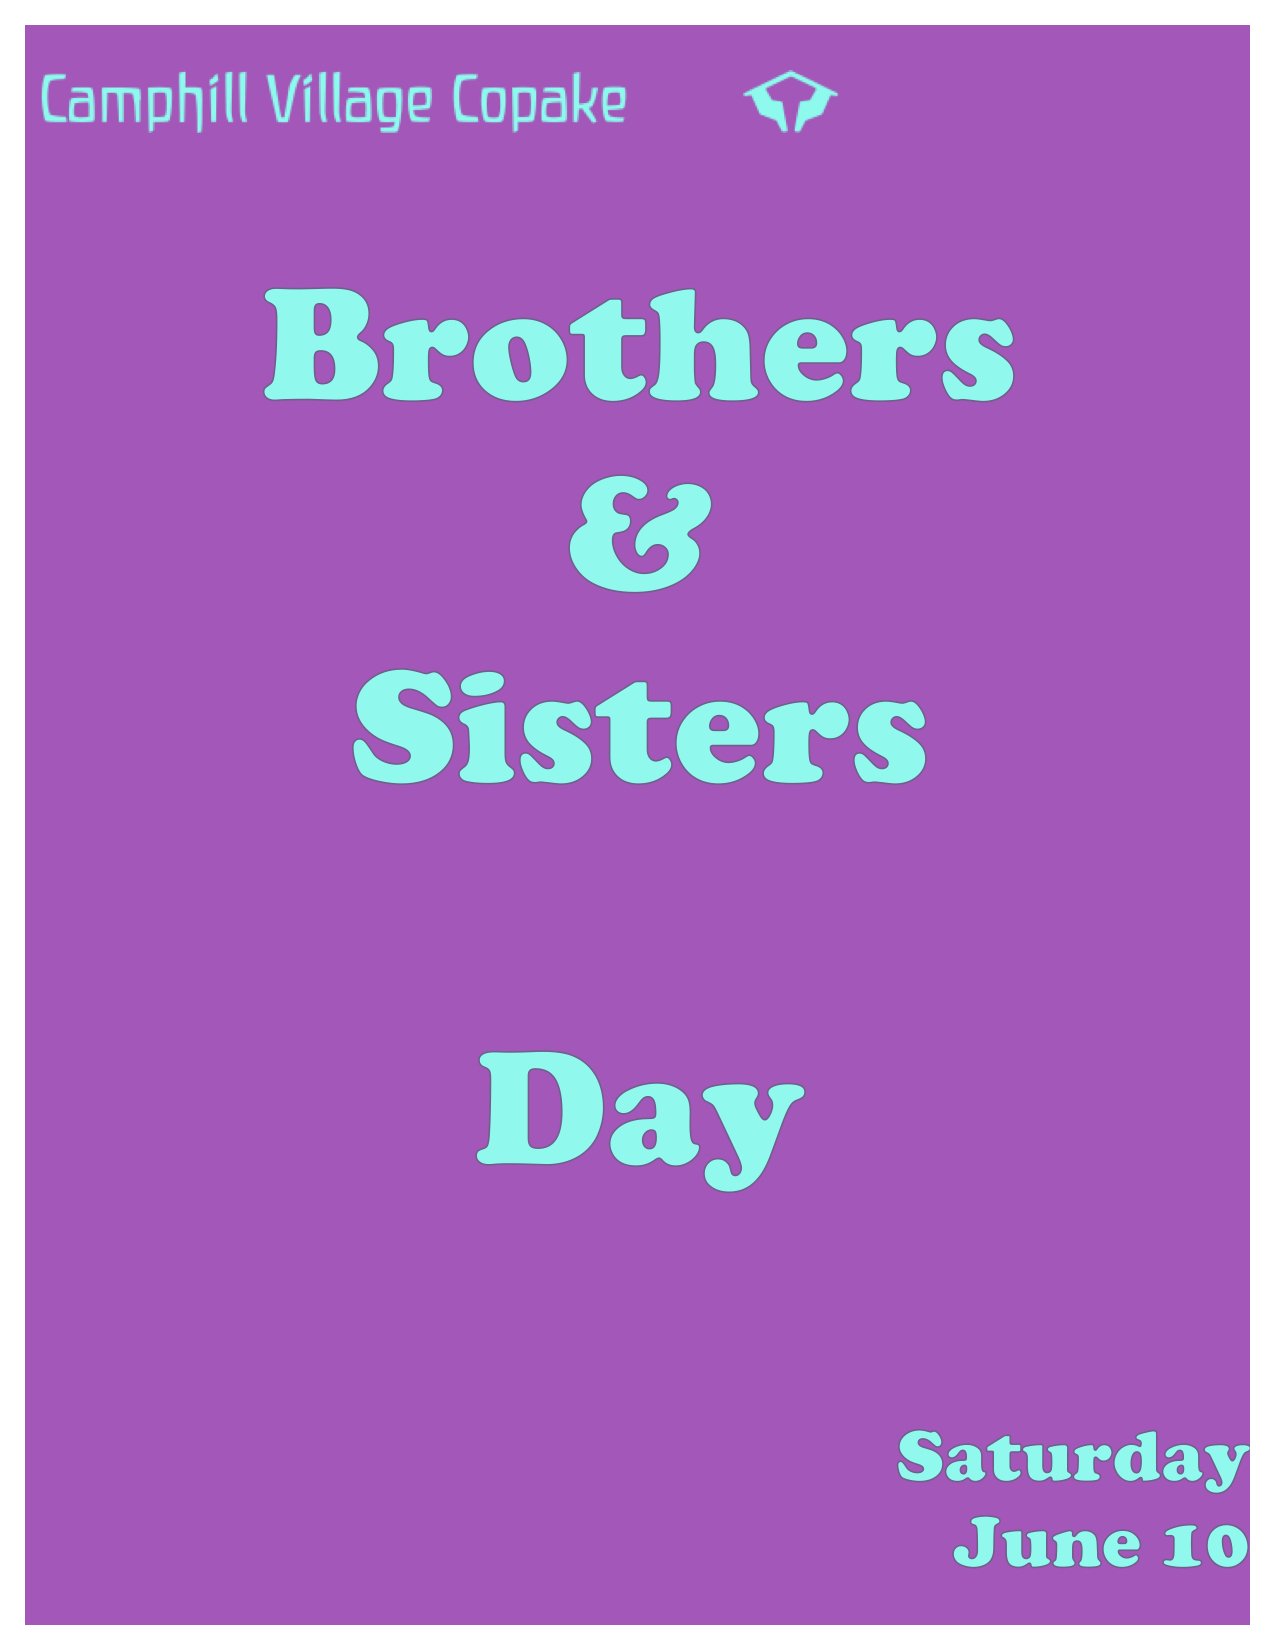 Brothers & Sisters Day